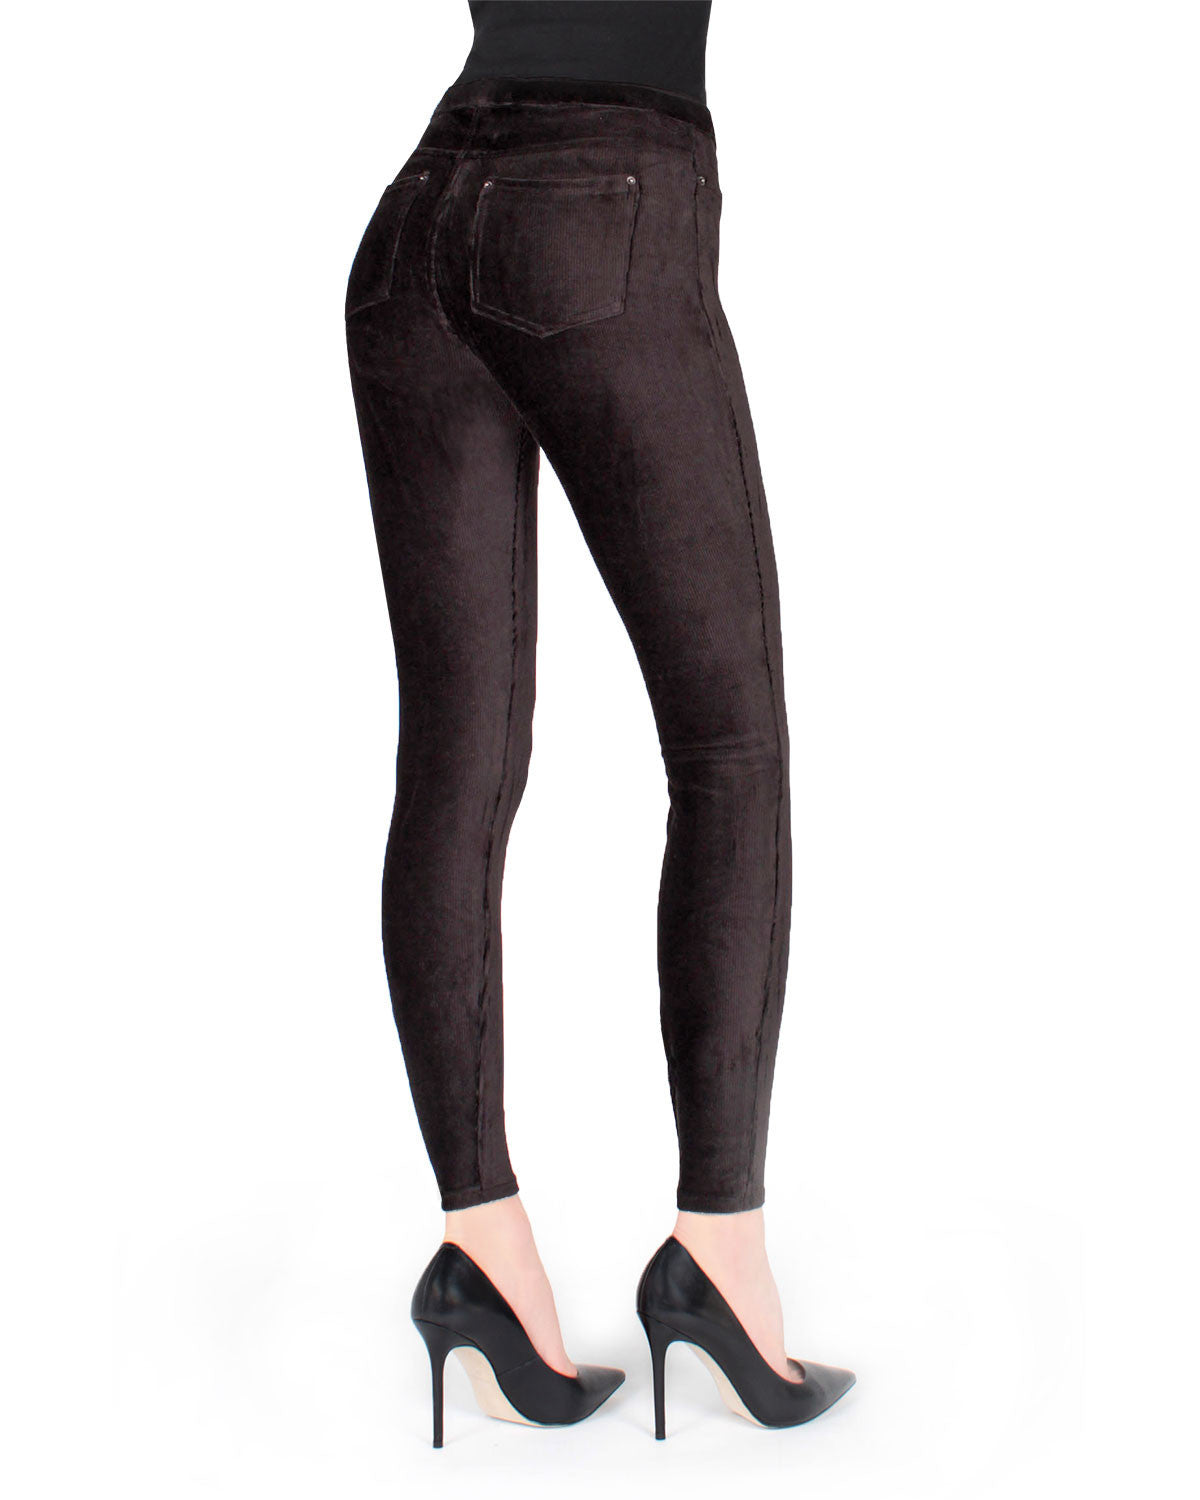 Premium Thin Ribbed Corduroy Leggings